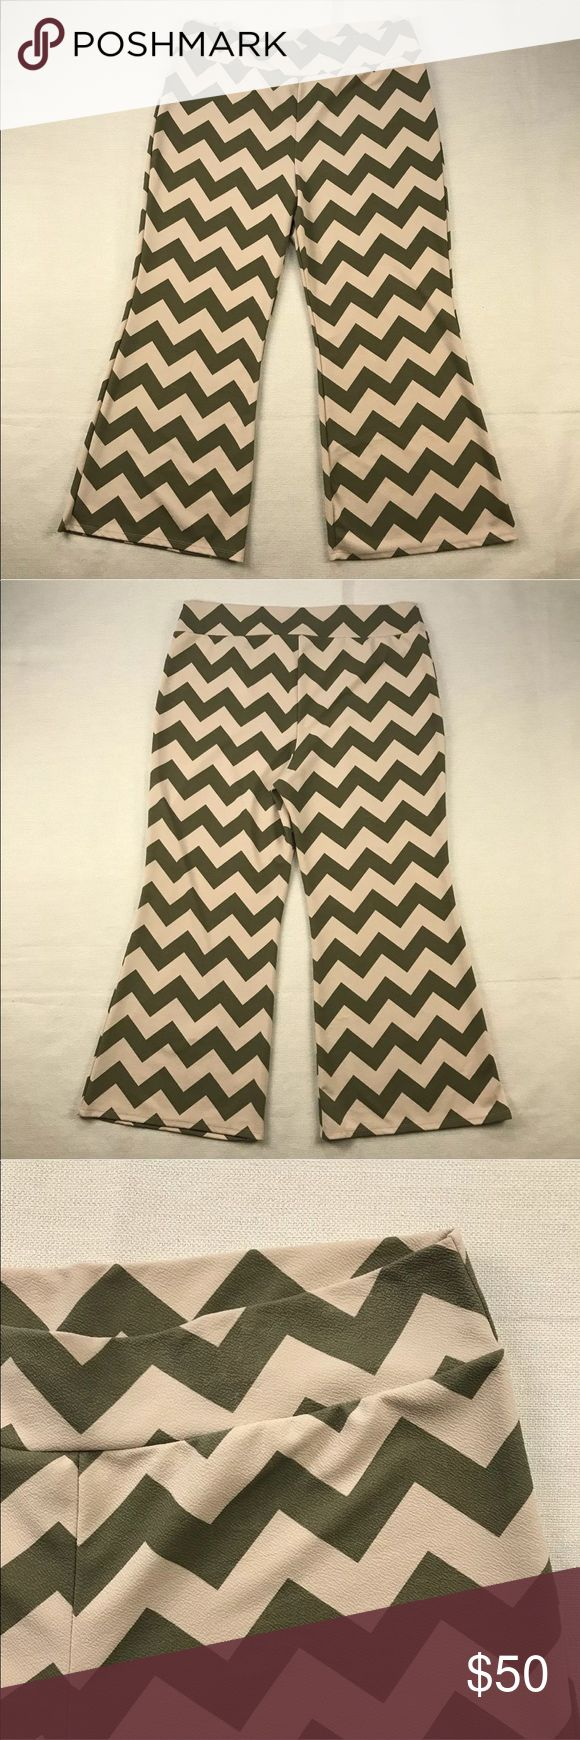 """Vamp Lounge Chevron Pants Vamp Lounge Chevron Pants  Women's Plus Size: 3X   Material: 95% Polyester 5% Spandex  No flaws.  Measurements lying flat: Waist 22"""", Inseam 30"""", Front Rise 16"""", Back Rise 18"""".  Please, review pictures. You will get the item shown. Smoke & pet free home. Vamp Pants Wide Leg"""